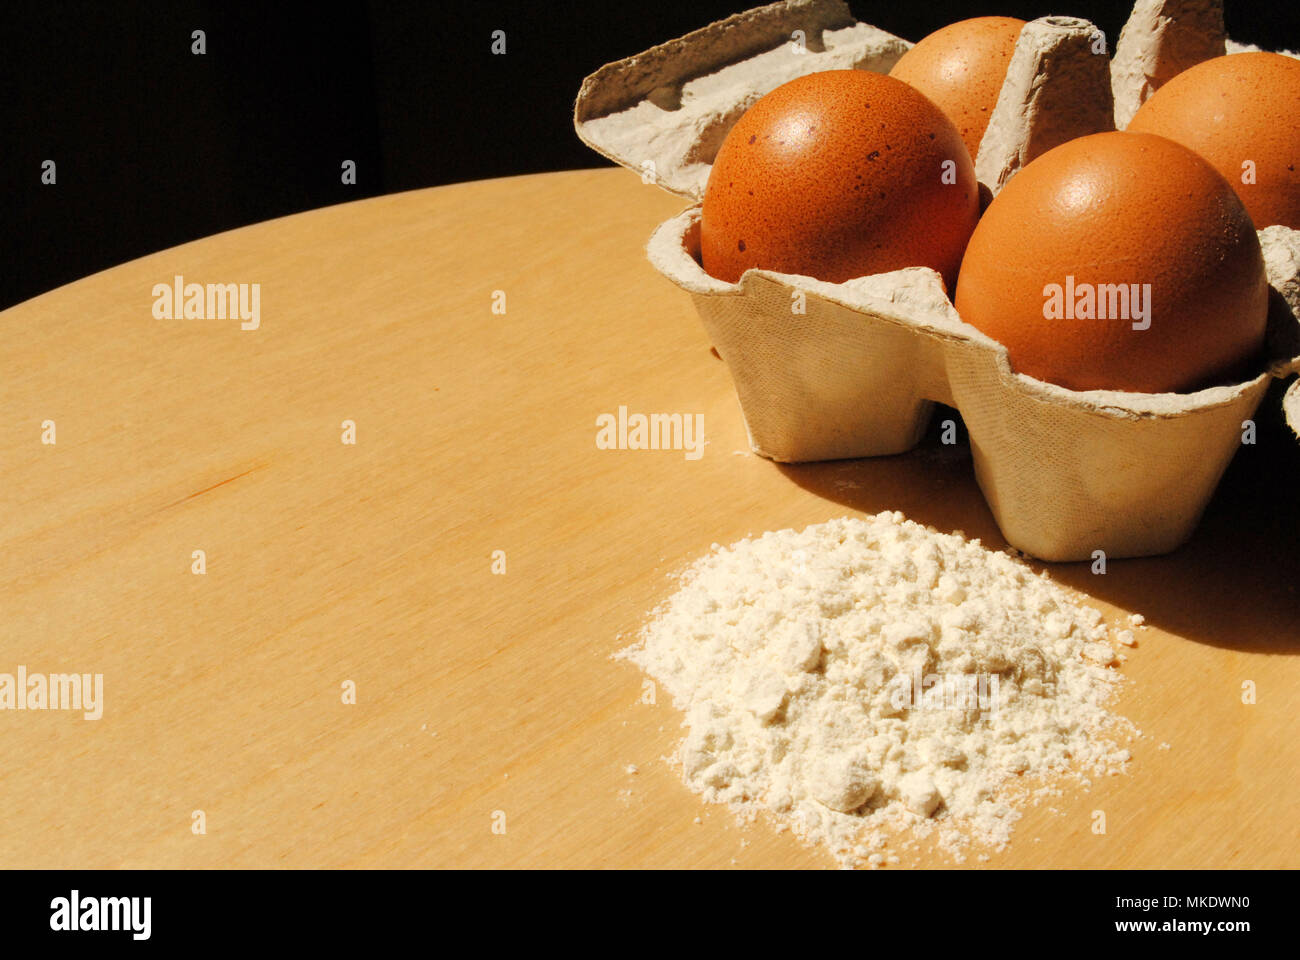 A close-up of baking ingredients and equipment. - Stock Image